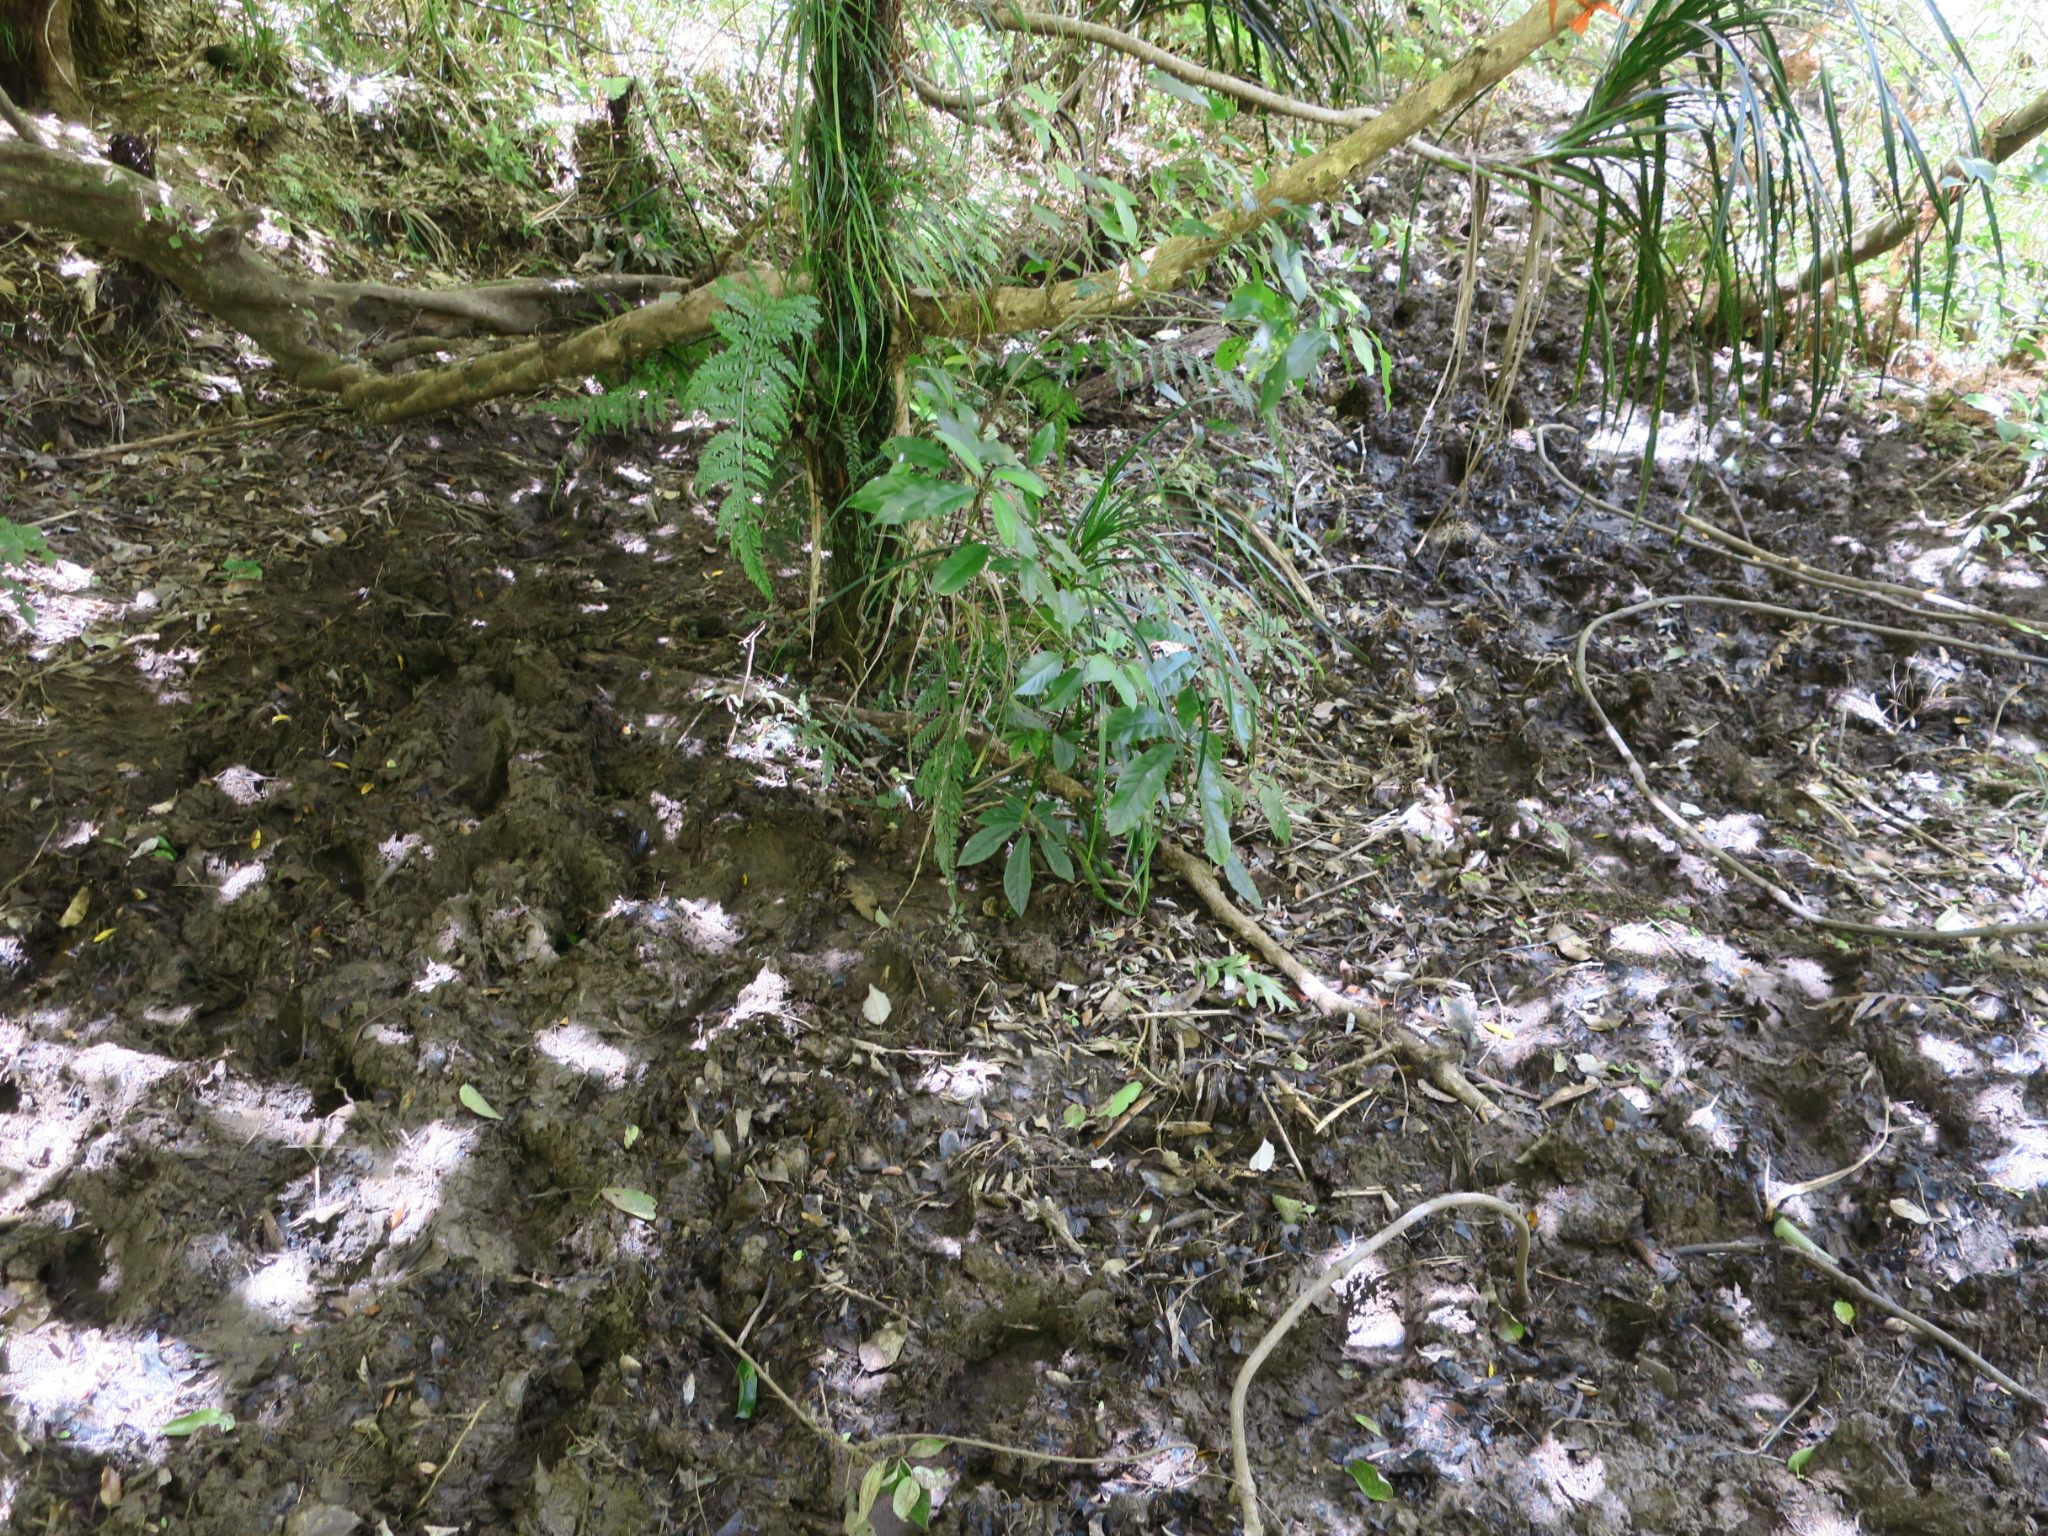 Dry rain forest floor, perhaps 50/50 dry/mud